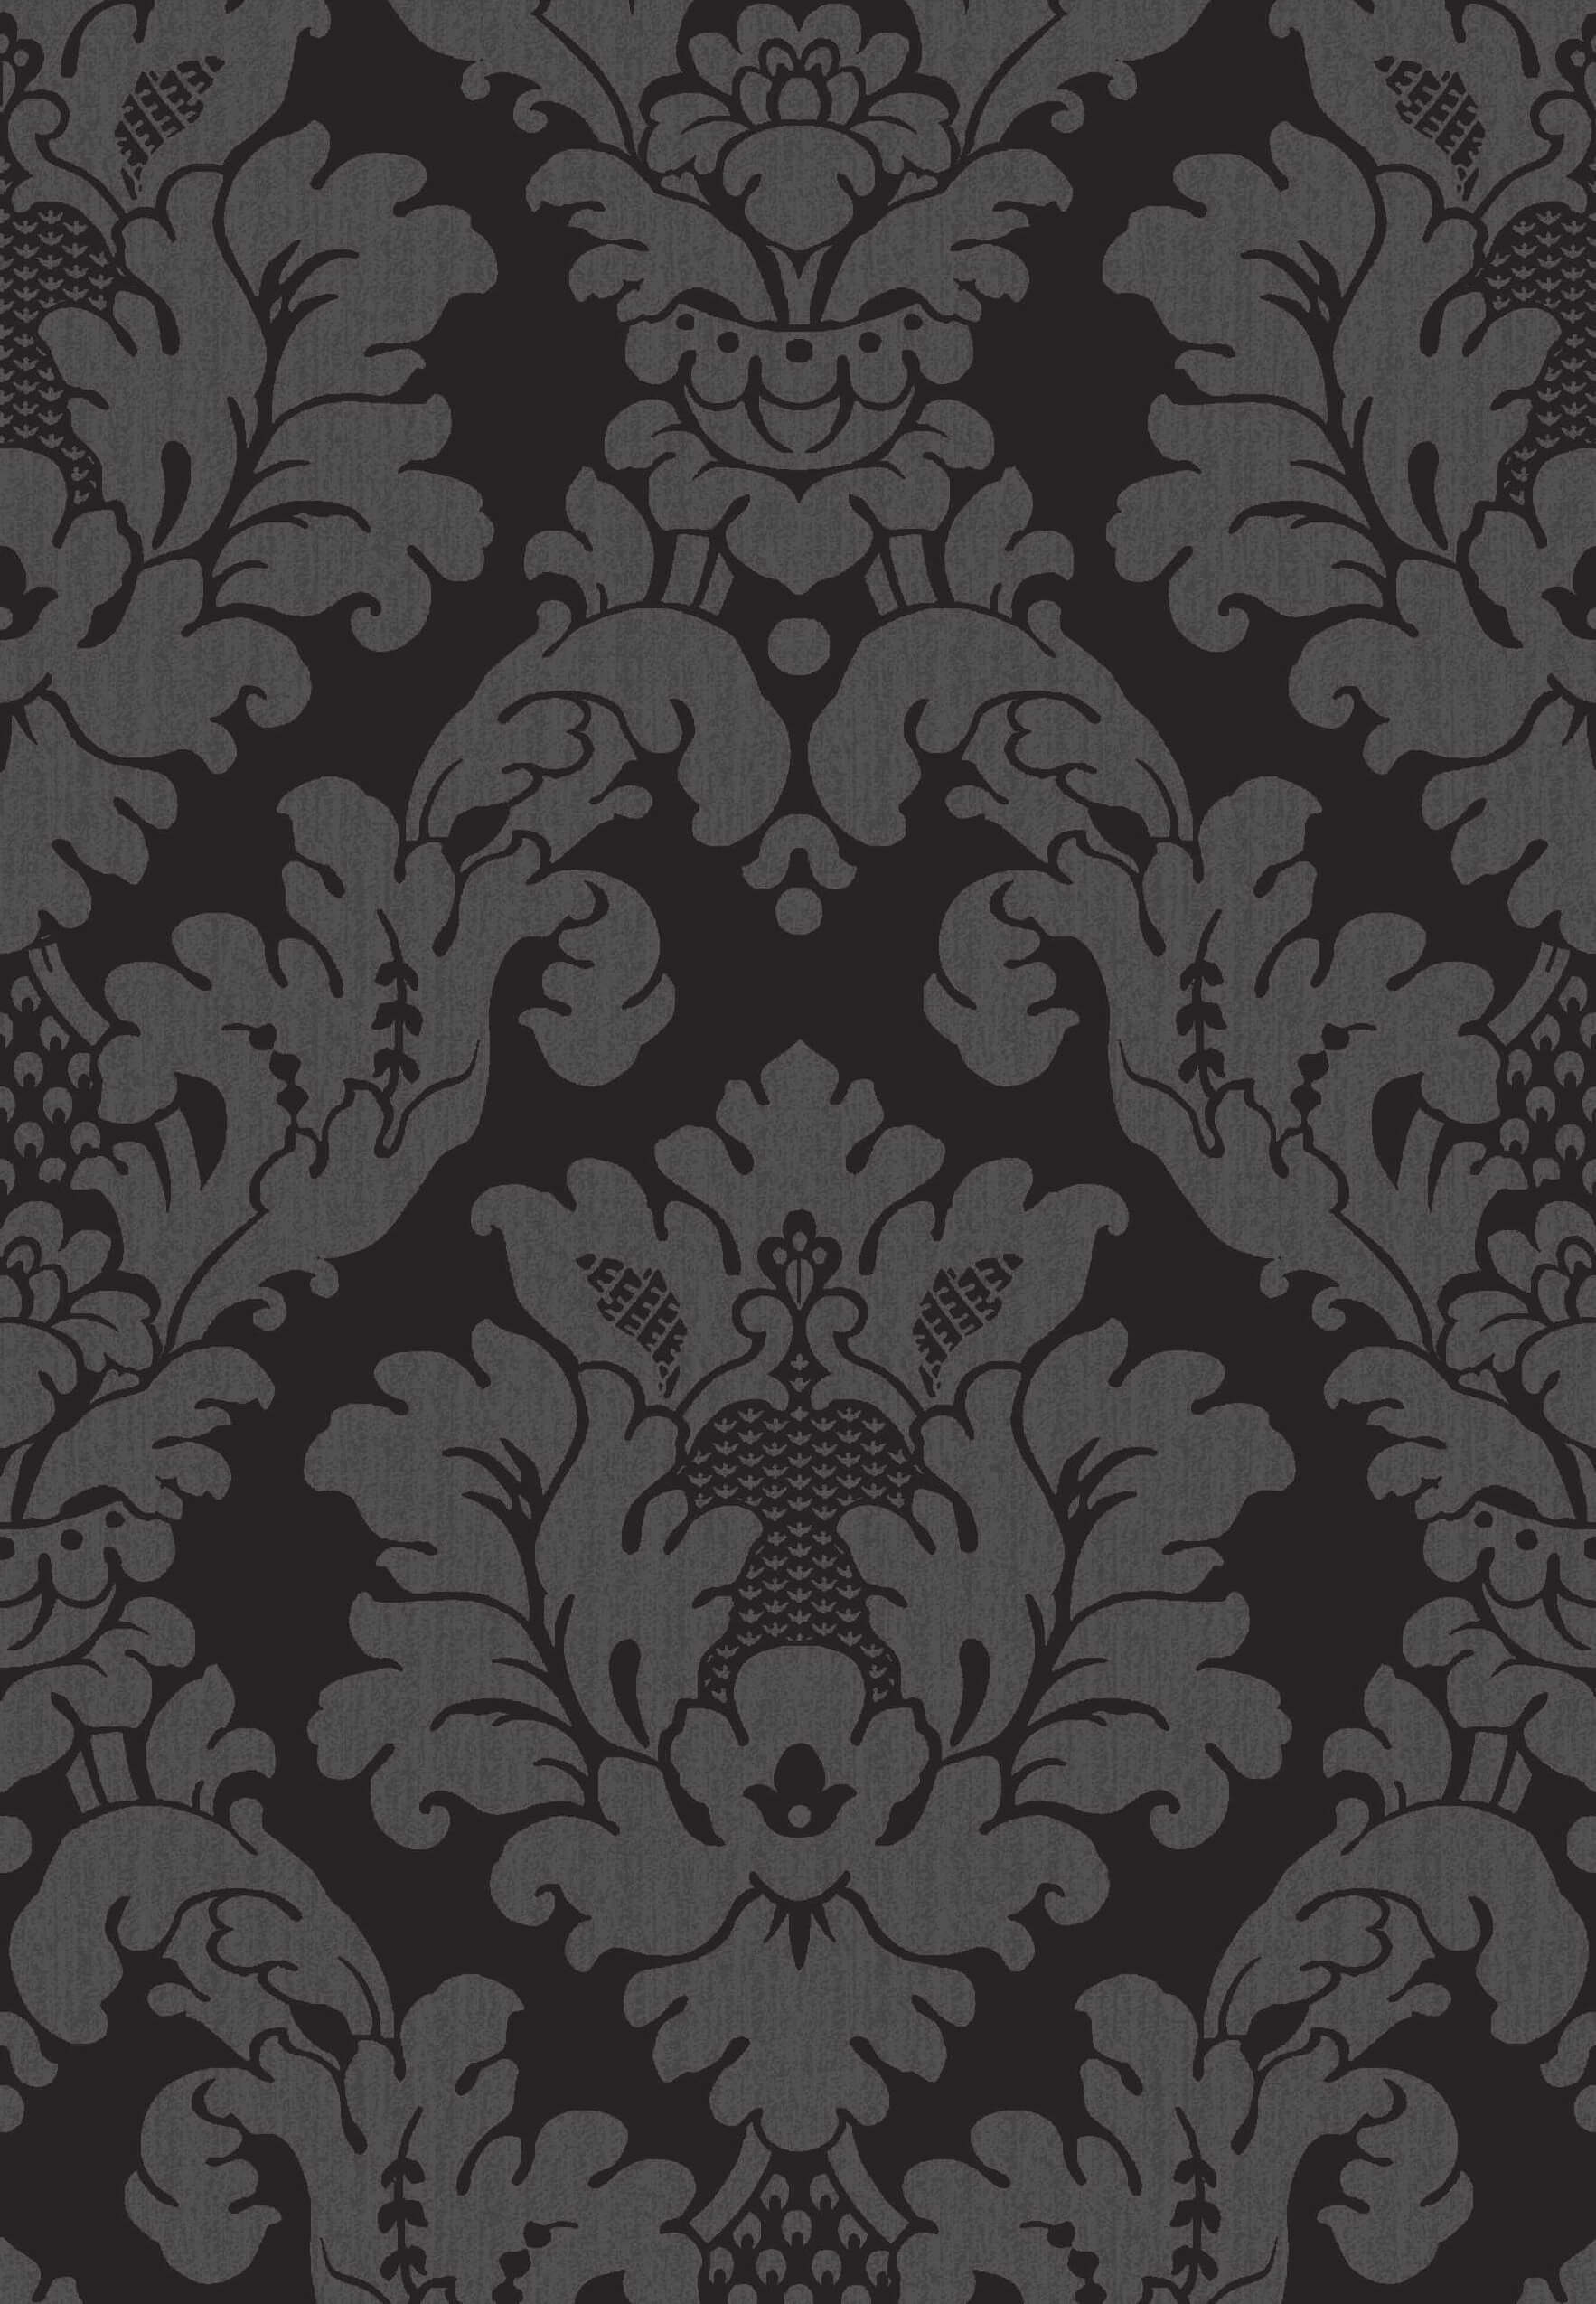 da-vinci-damask-black